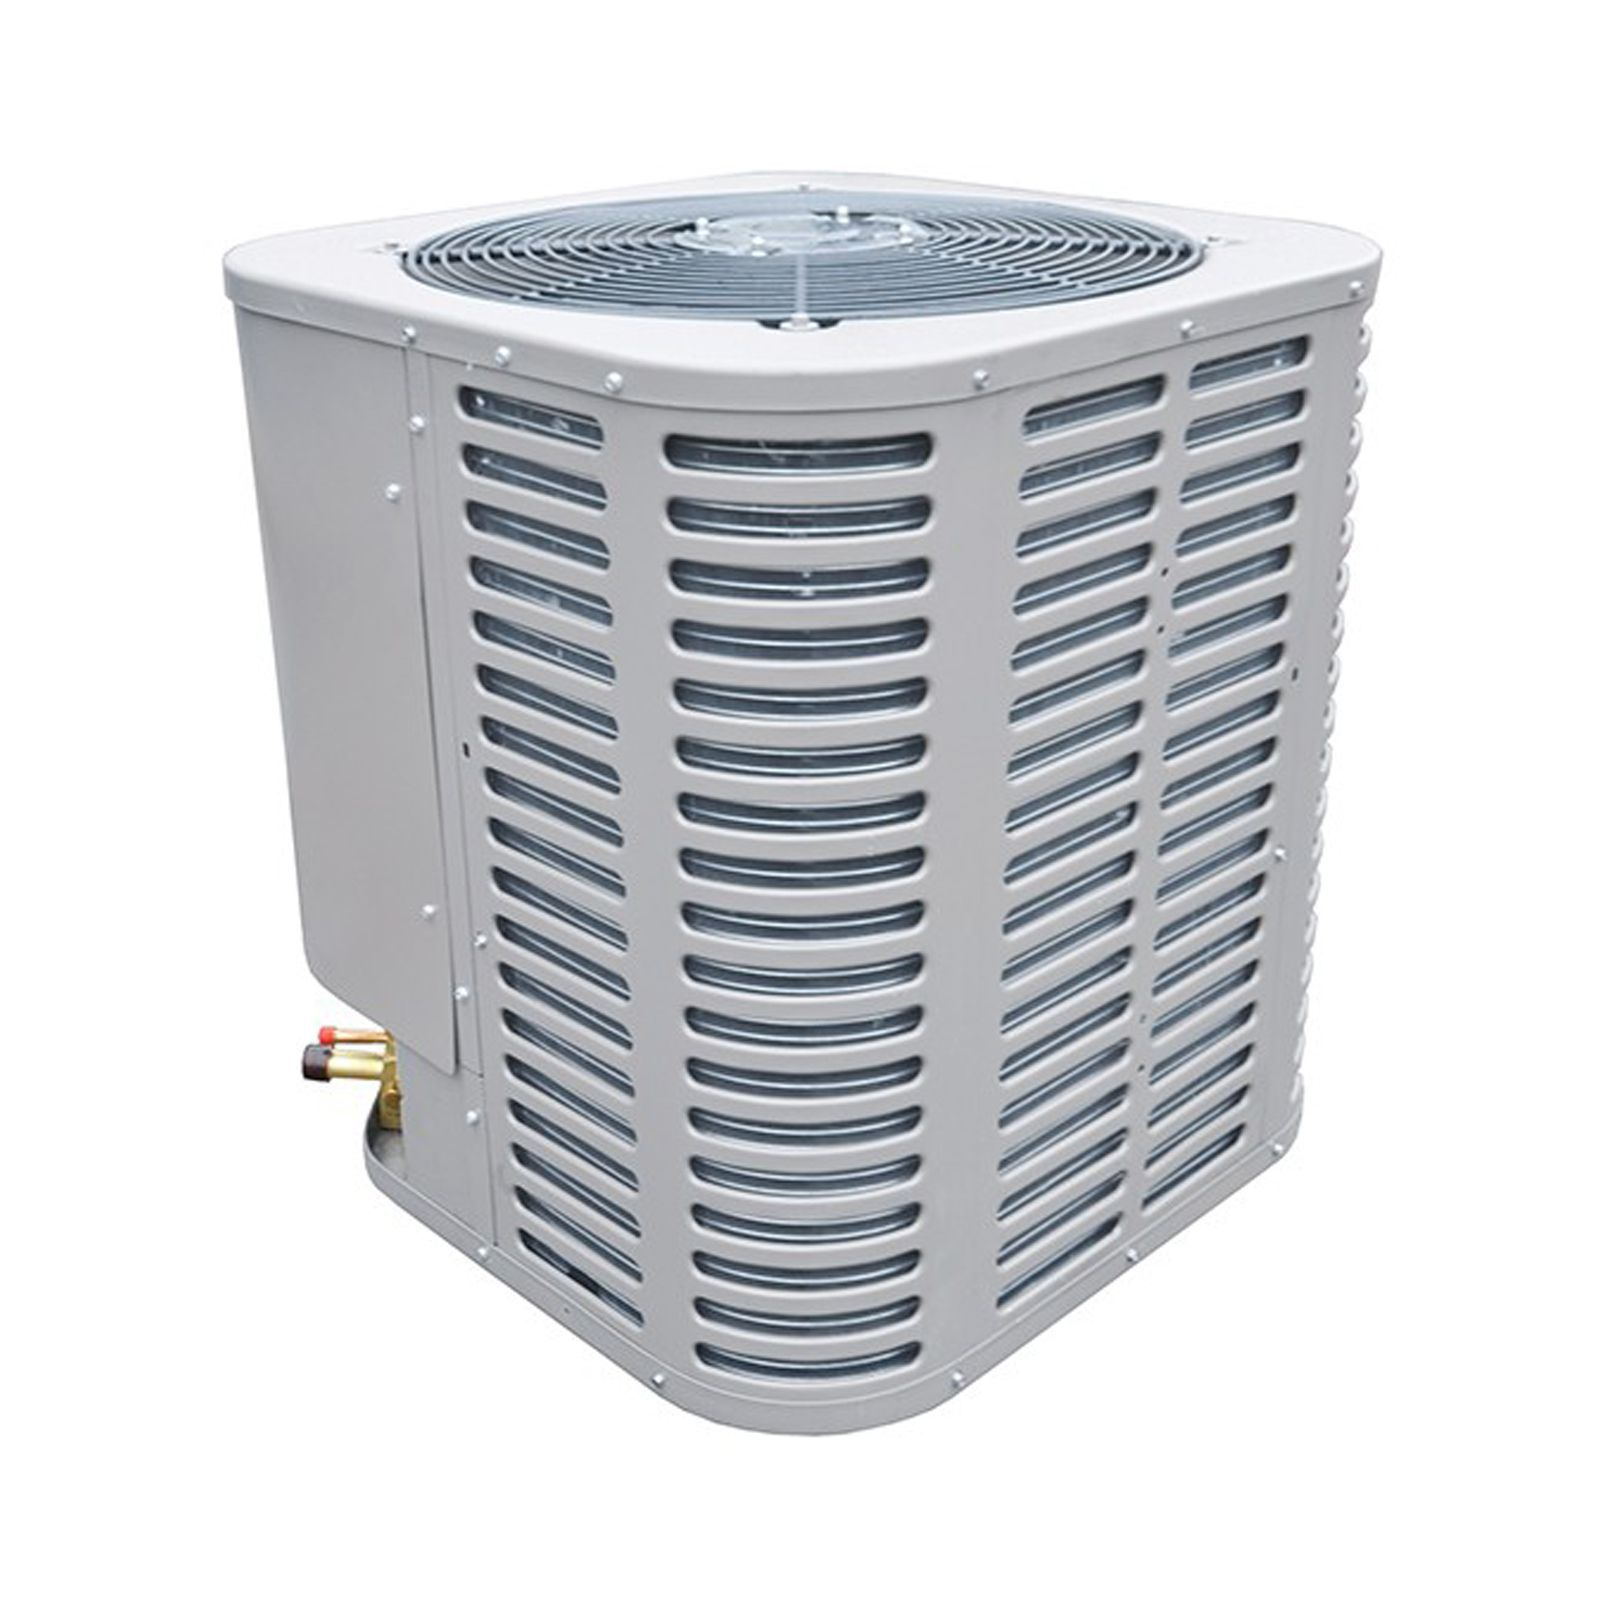 #857241 Compare Commercial Air Conditioning Systems Parts And  Recommended 11607 Compare Heating And Air Conditioning Systems pics with 1600x1600 px on helpvideos.info - Air Conditioners, Air Coolers and more